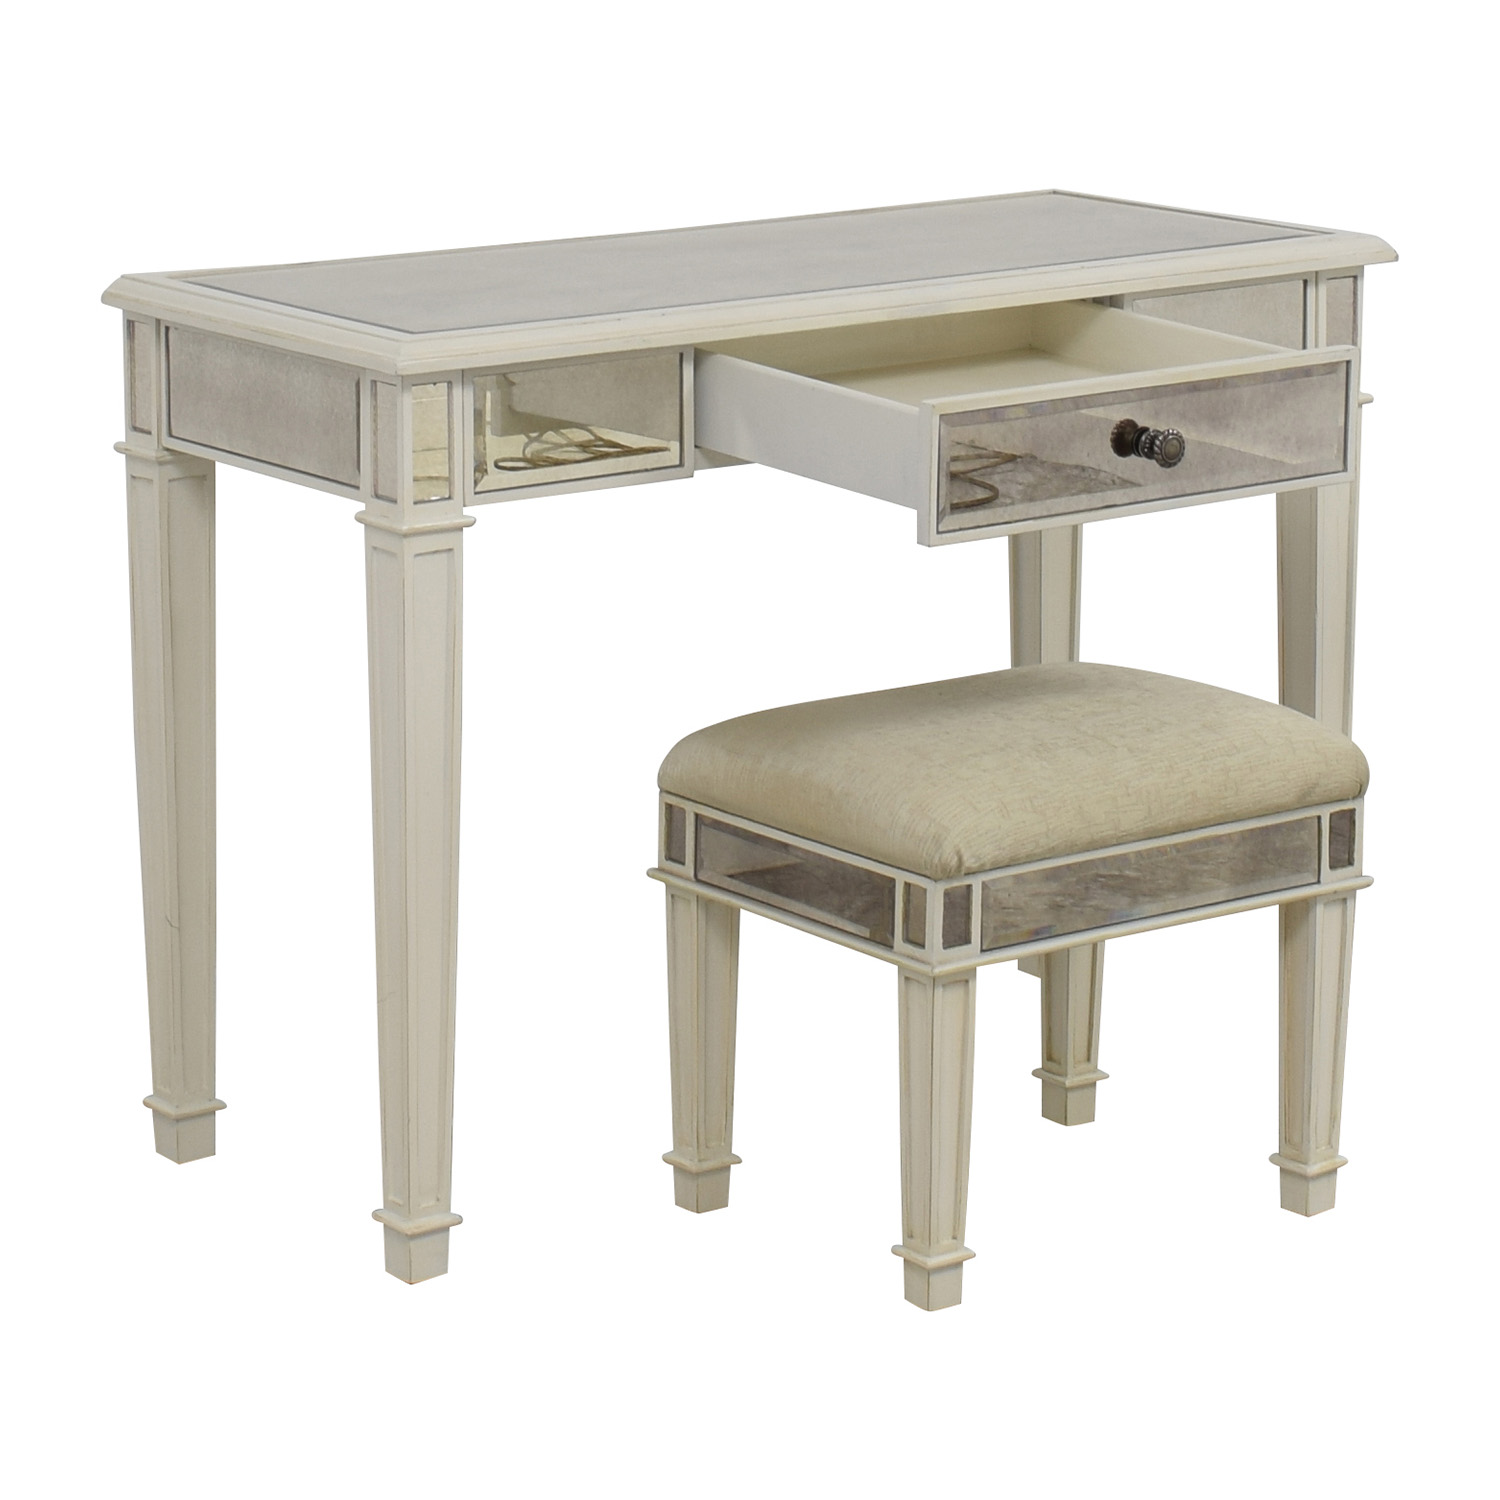 White Vanity Table And Chair 74 Off Pier 1 Imports Pier 1 Imports Antique White